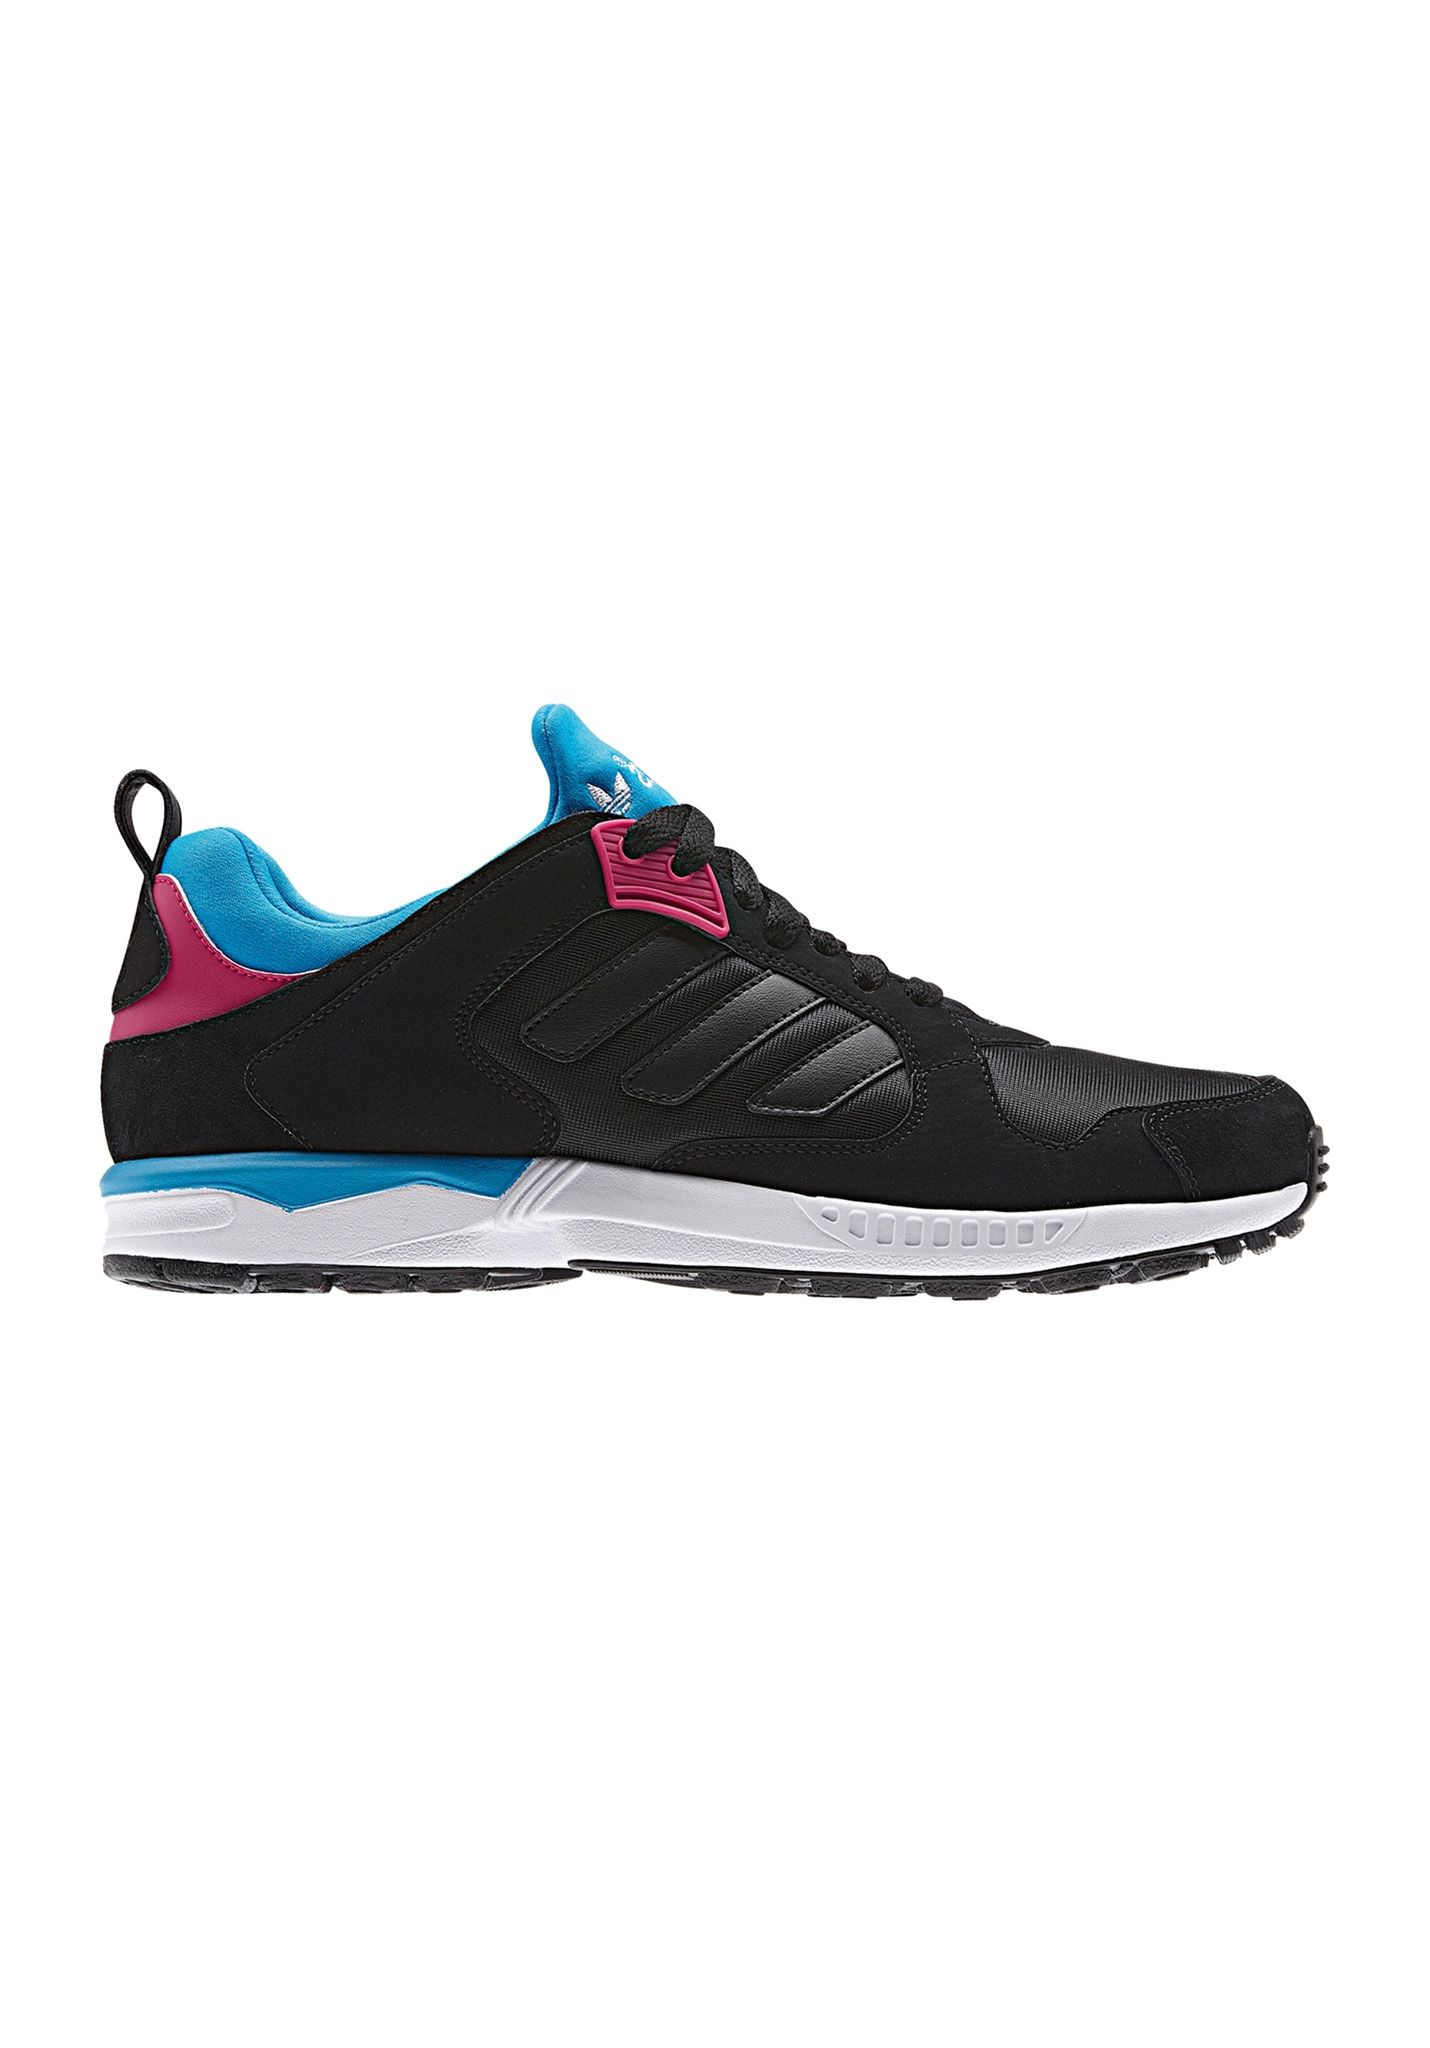 789fafff0 ADIDAS ORIGINALS ZX 5000 RSPN - Sneakers for Men - Black - Planet Sports